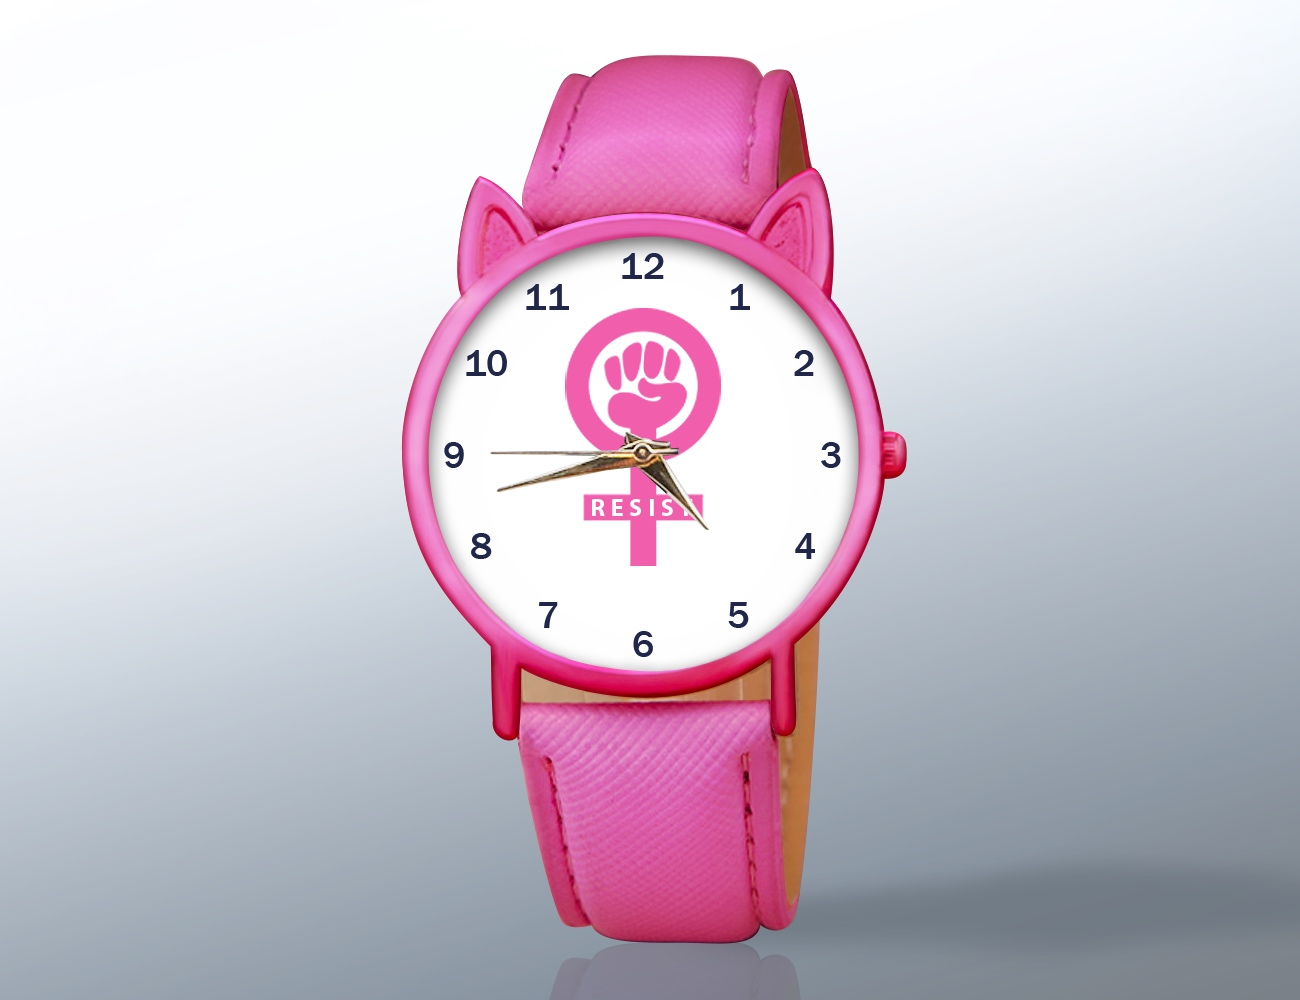 The Women's Movement Resist Watch